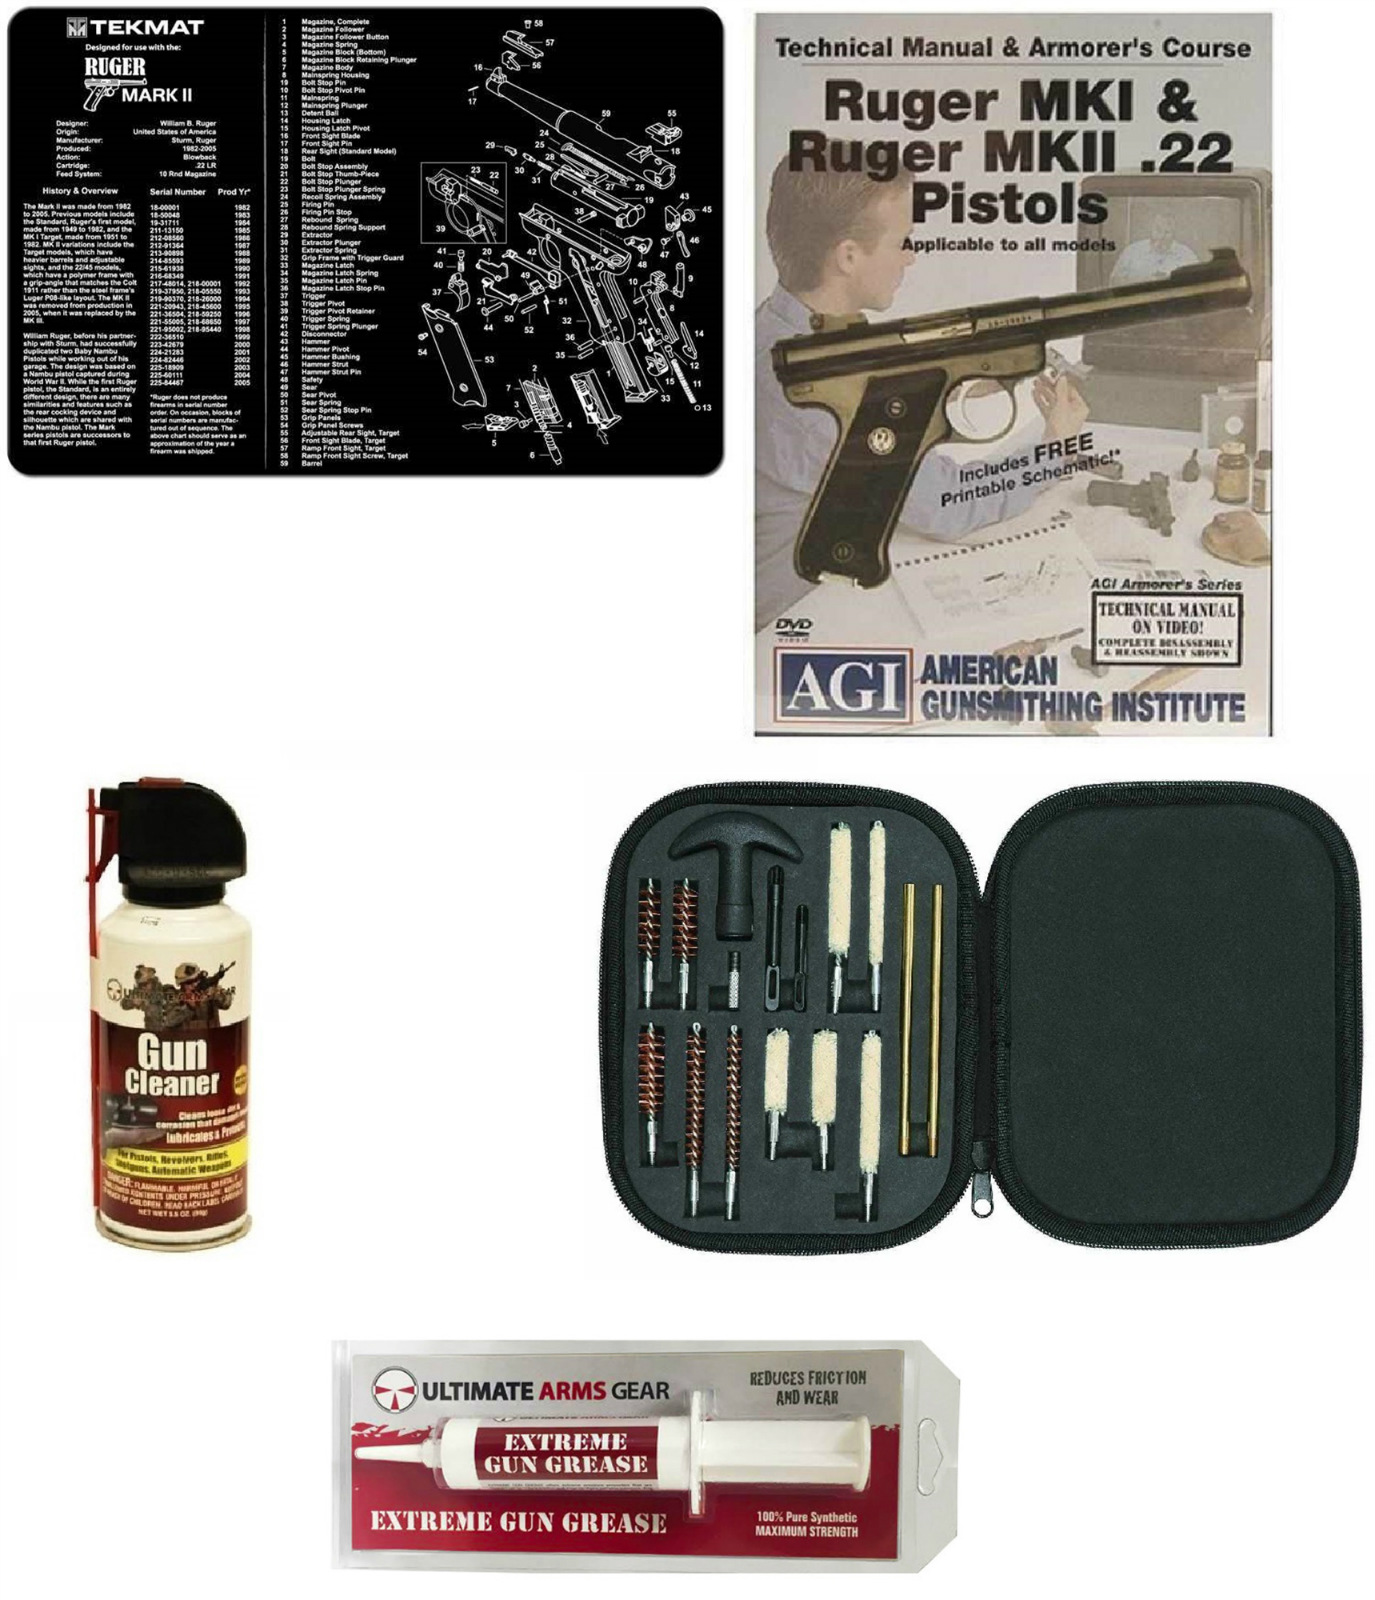 Gunsmith Cleaning Gun Mat Ruger MK II Mark II 2 + Pro Cleaning Supplies Kit  17 pc Cleaning Kit Brushes, Swab, Slotted Tips + AGI DVD Pistols Armorer's